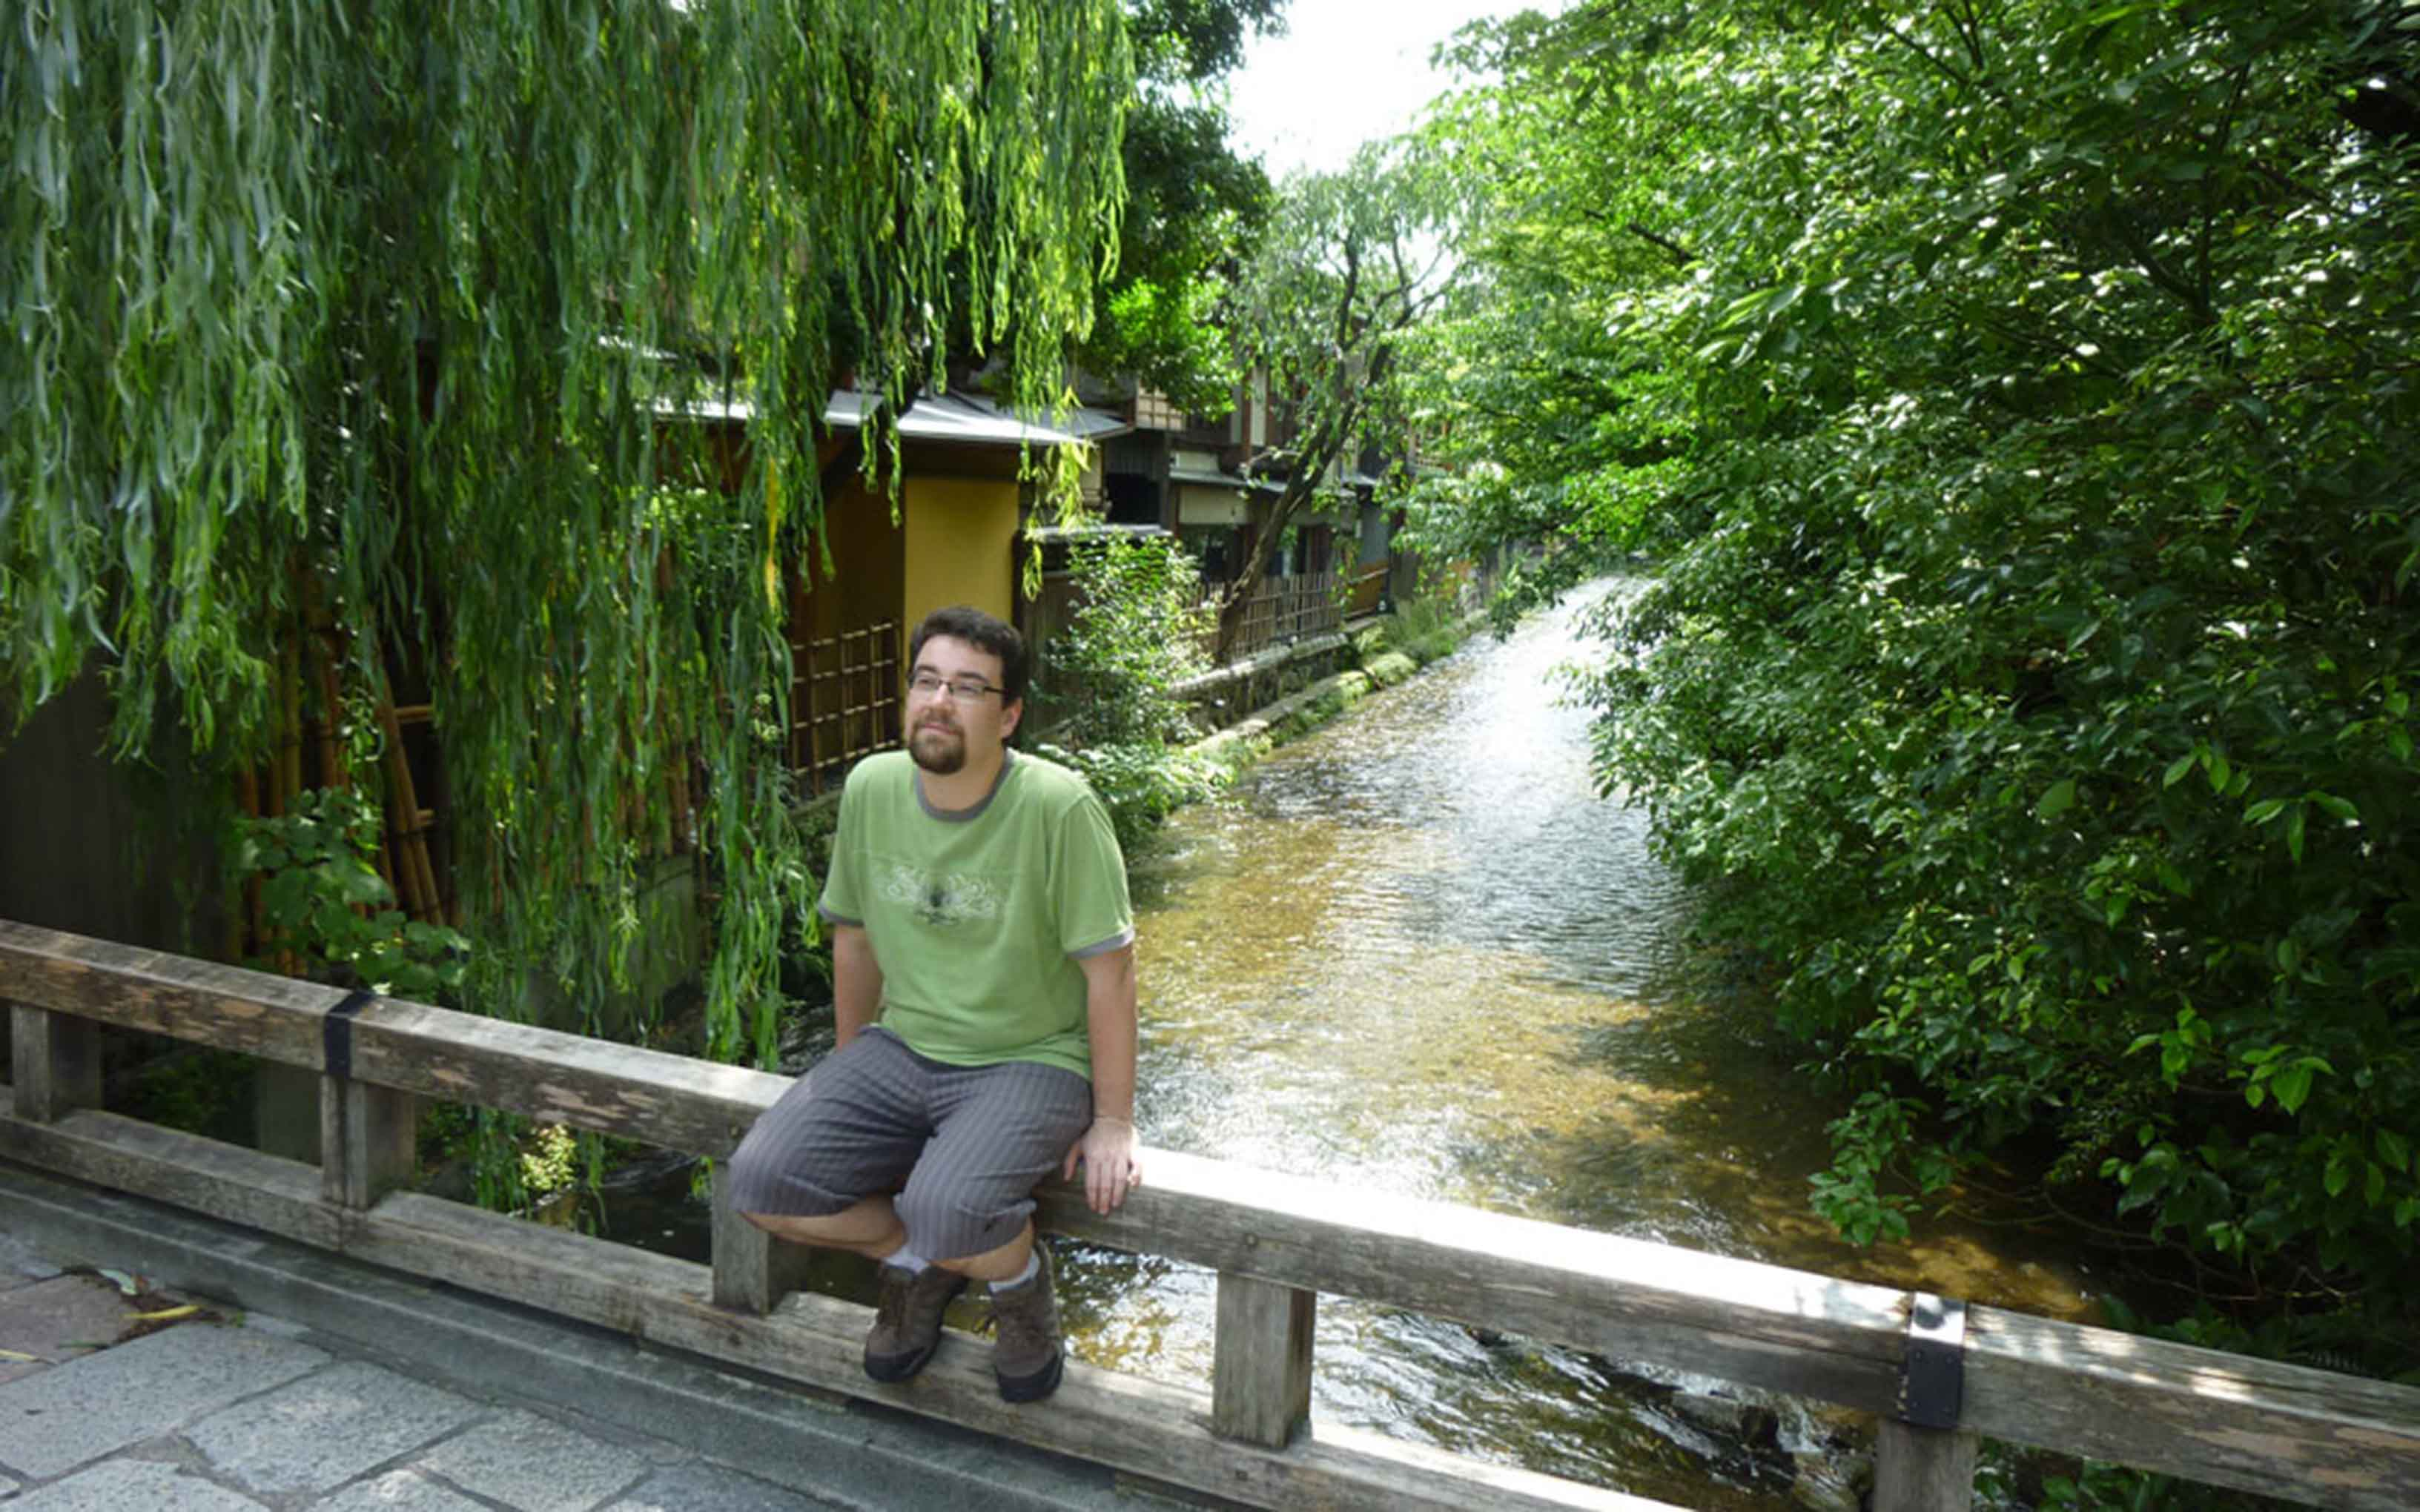 Andrew Johnstone relaxing on the Gion Tatsumi bridge in Kyoto.